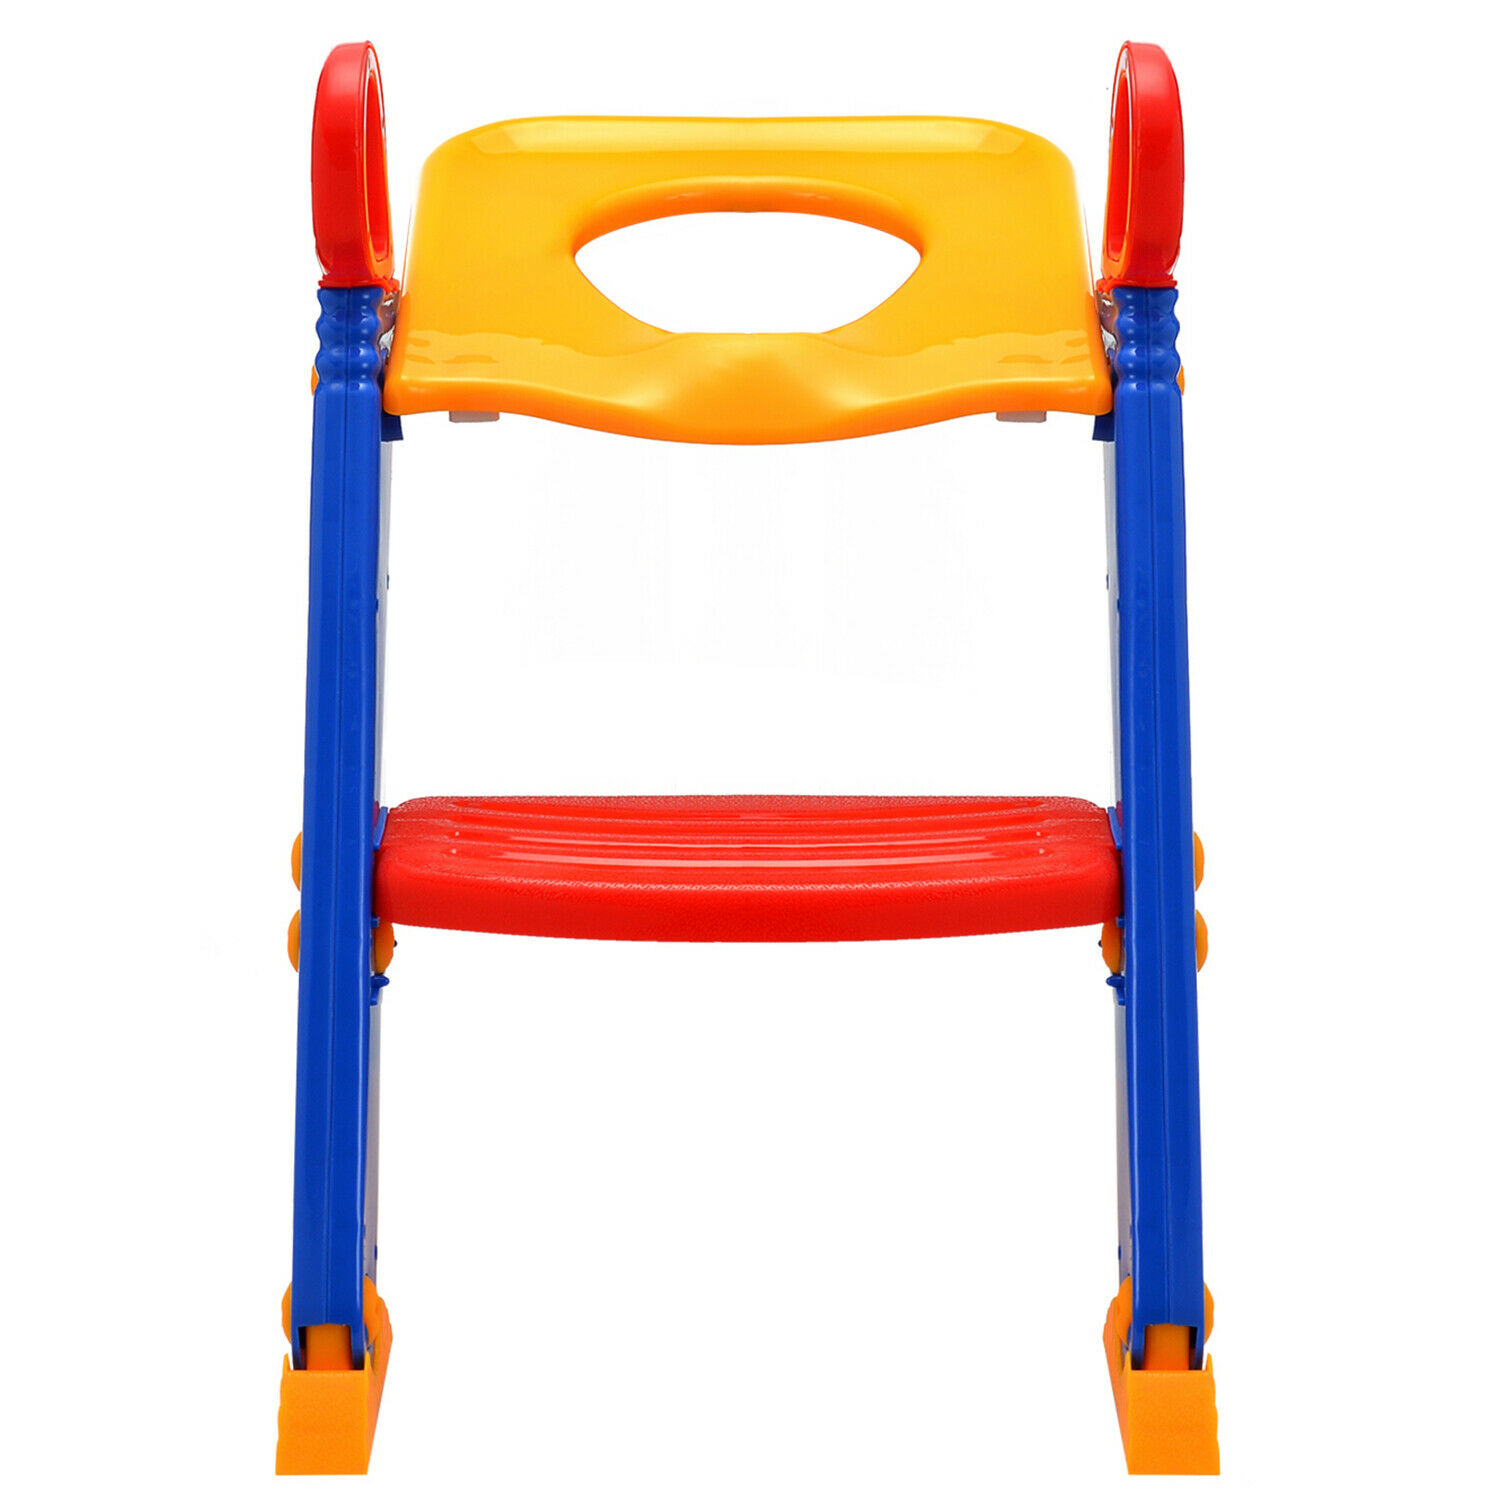 3 in 1 Samincom Potty Toilet Seat with Step Stool ladder, Trainer for Kids Tod